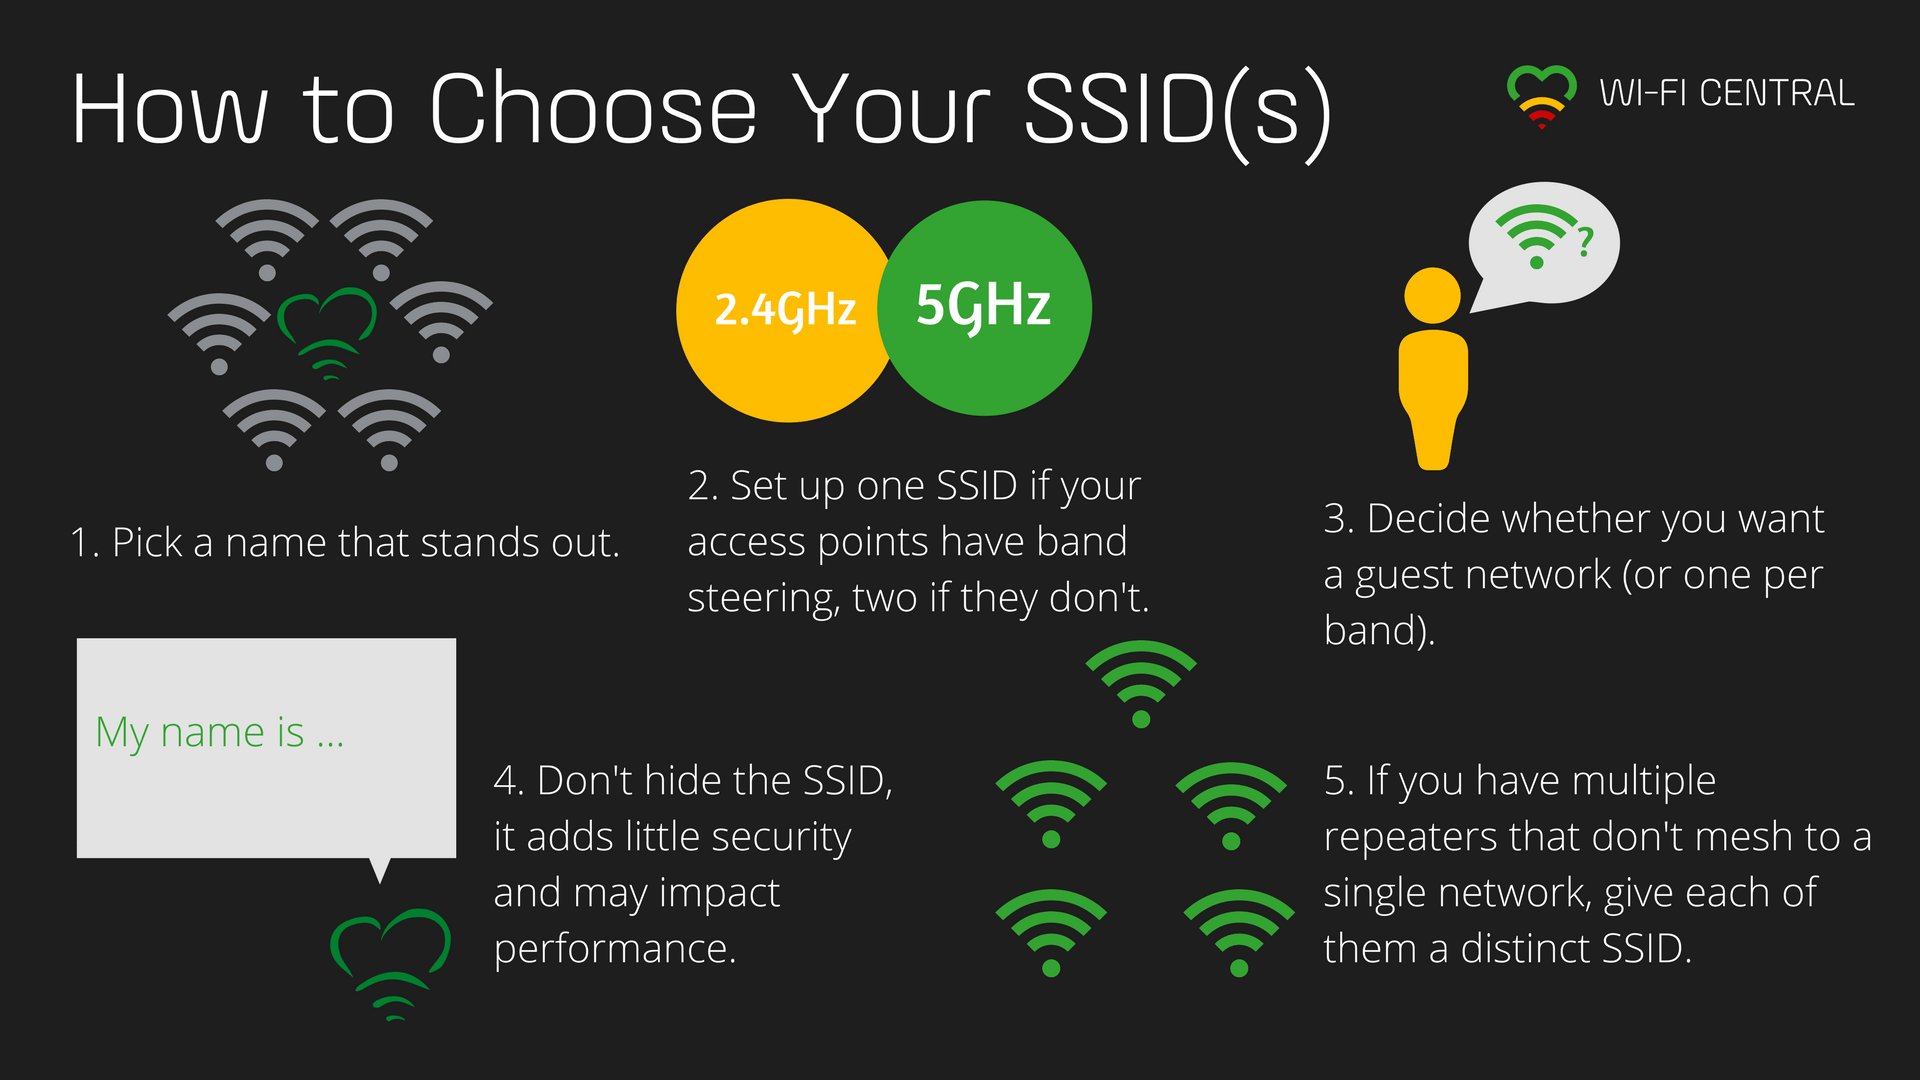 hight resolution of five steps to choosing the right ssid setup for your network also described in the